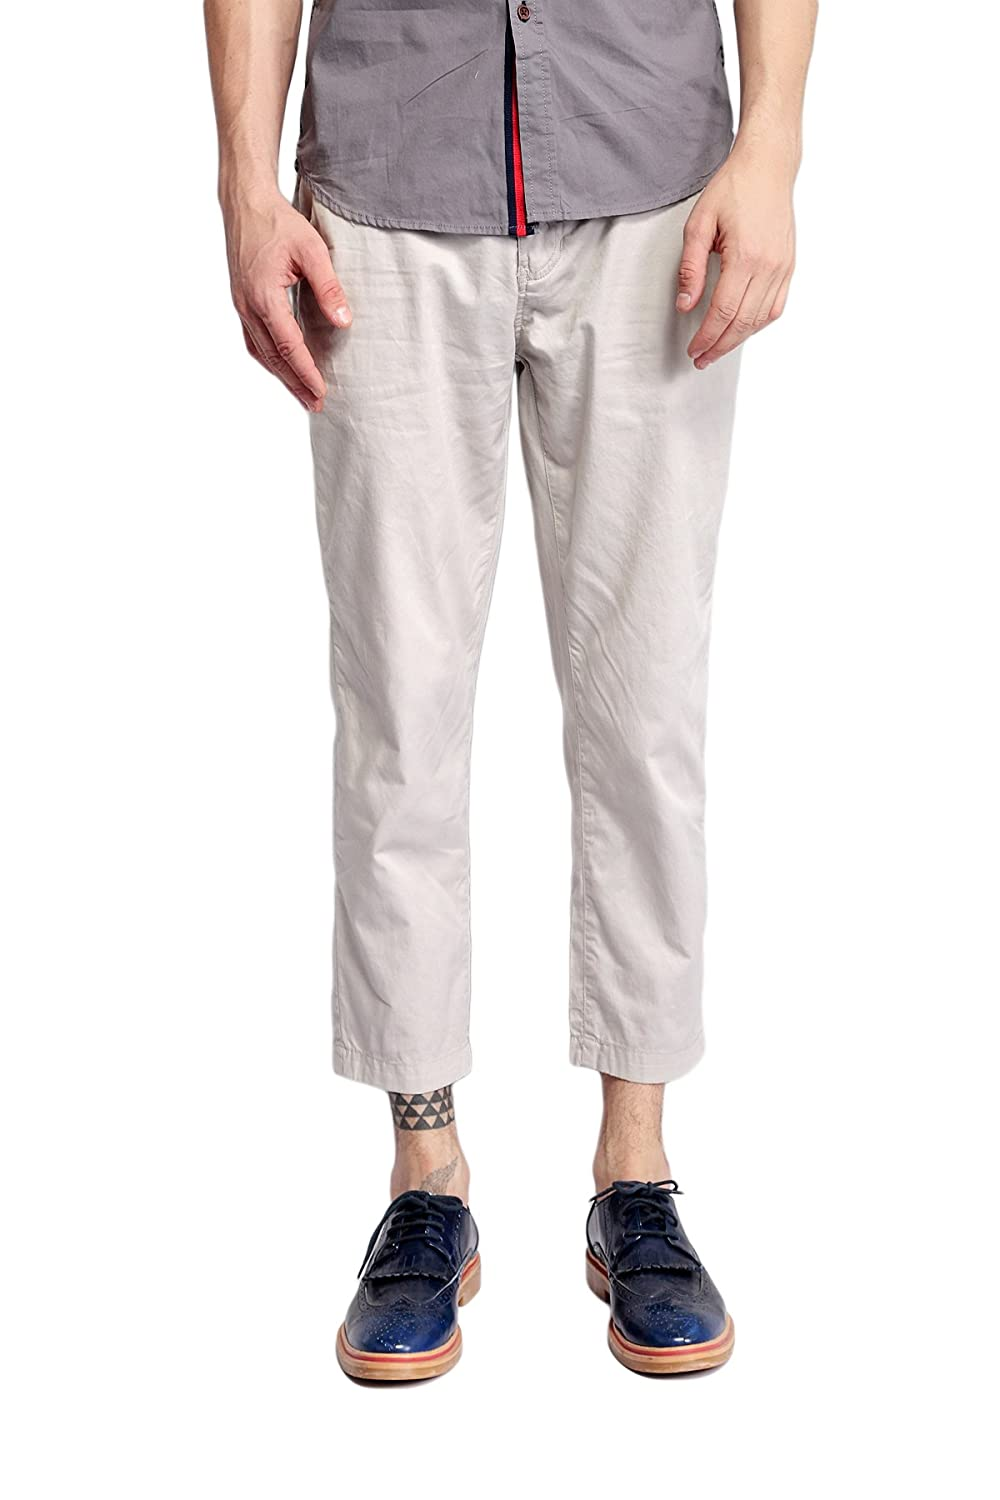 Pau1Hami1ton PH-04 Men's Casual Ankle Length Straight Cropped Trousers Pants PH-04-1